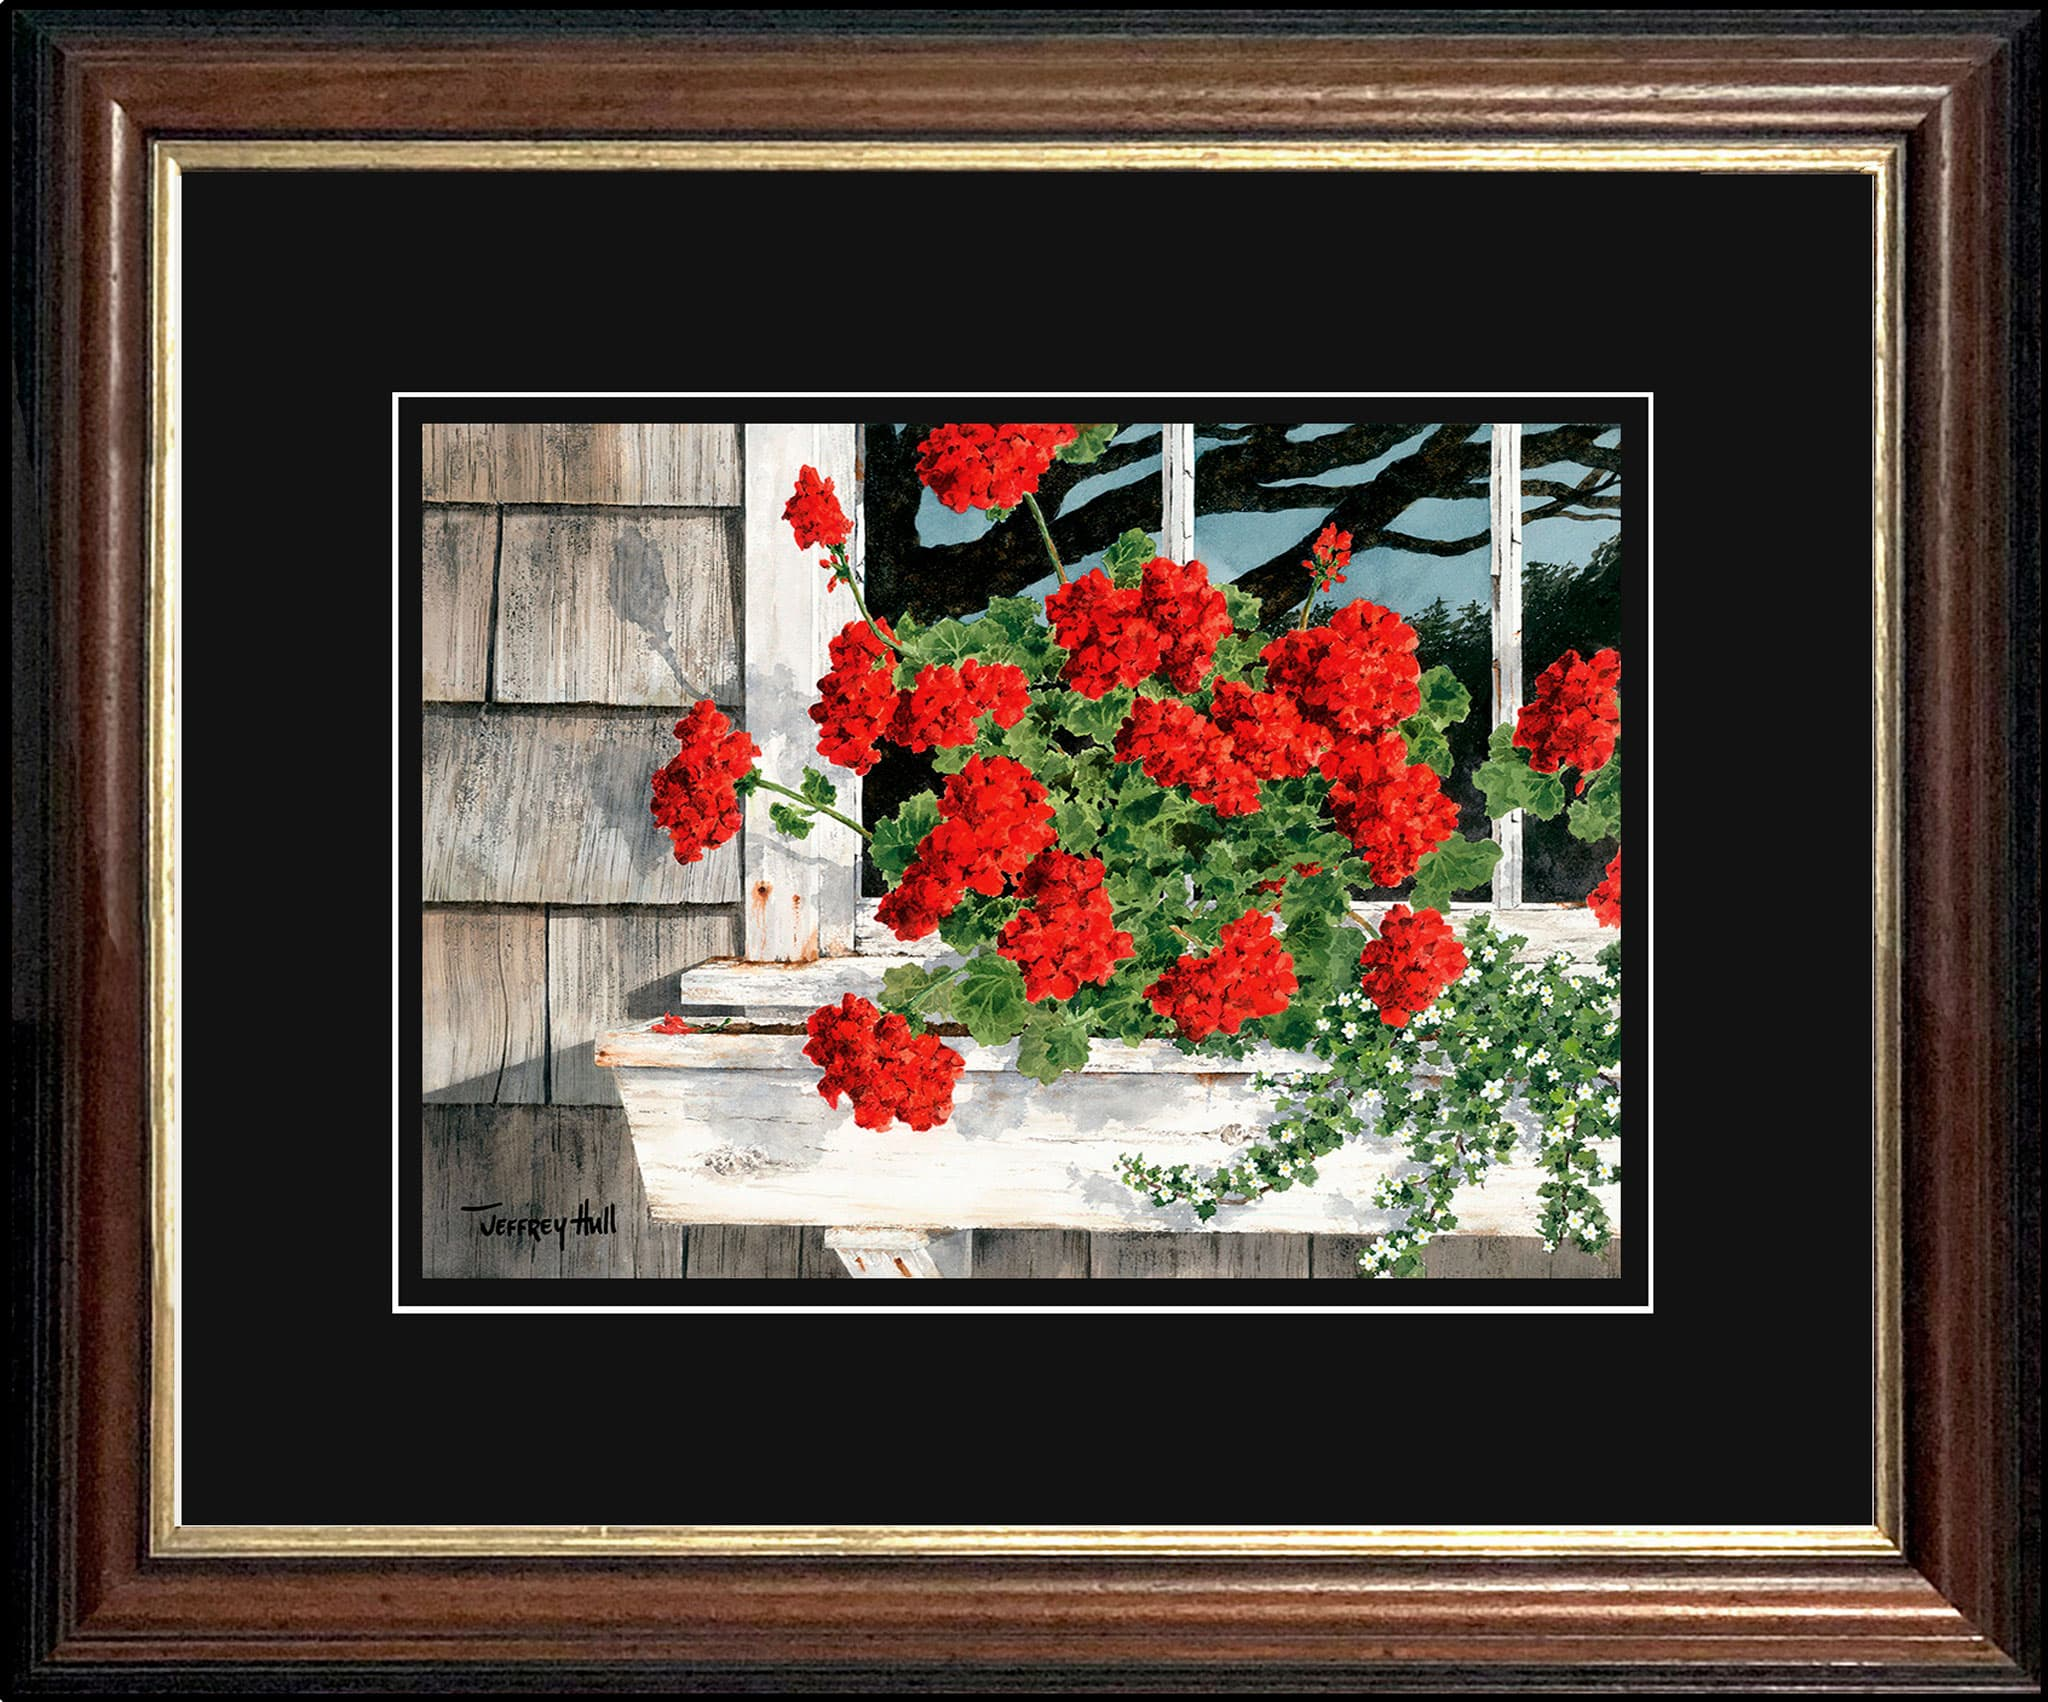 Carol_s-Geraniums-OpenEd-Malabar-Jet-Black-4-Website-2021